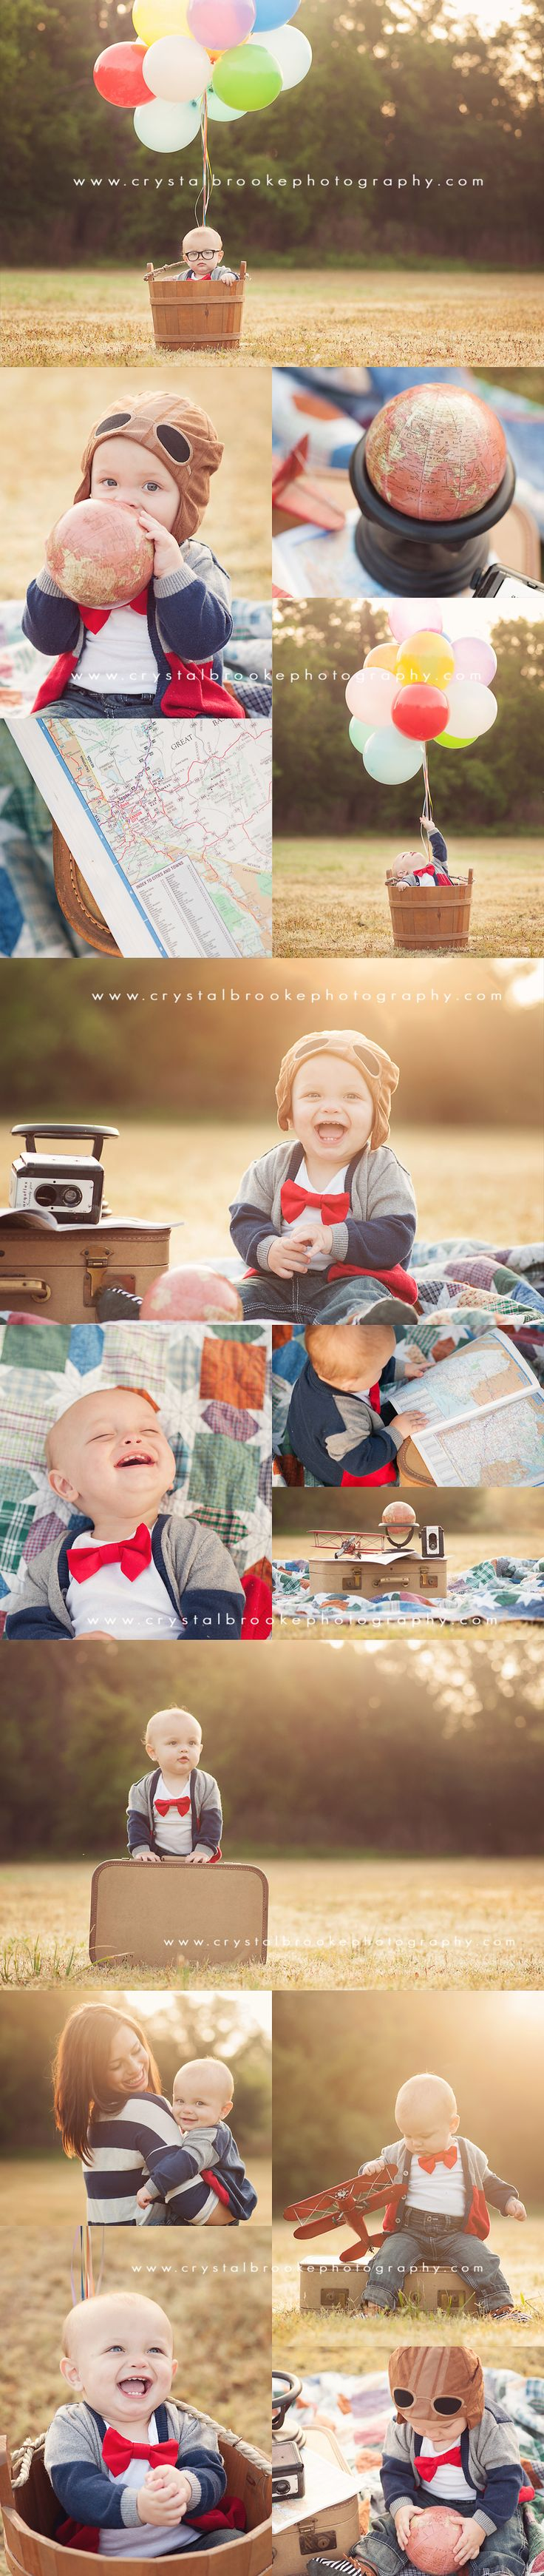 Disney Pixar's UP movie themed theme photo session adventure vintage suitcase airplane travel map globe golden sunset sunrise lighthing natural cypress magnolia tomball the woodlands conroe montgomery magnolia texas happy cute 1 year old boy